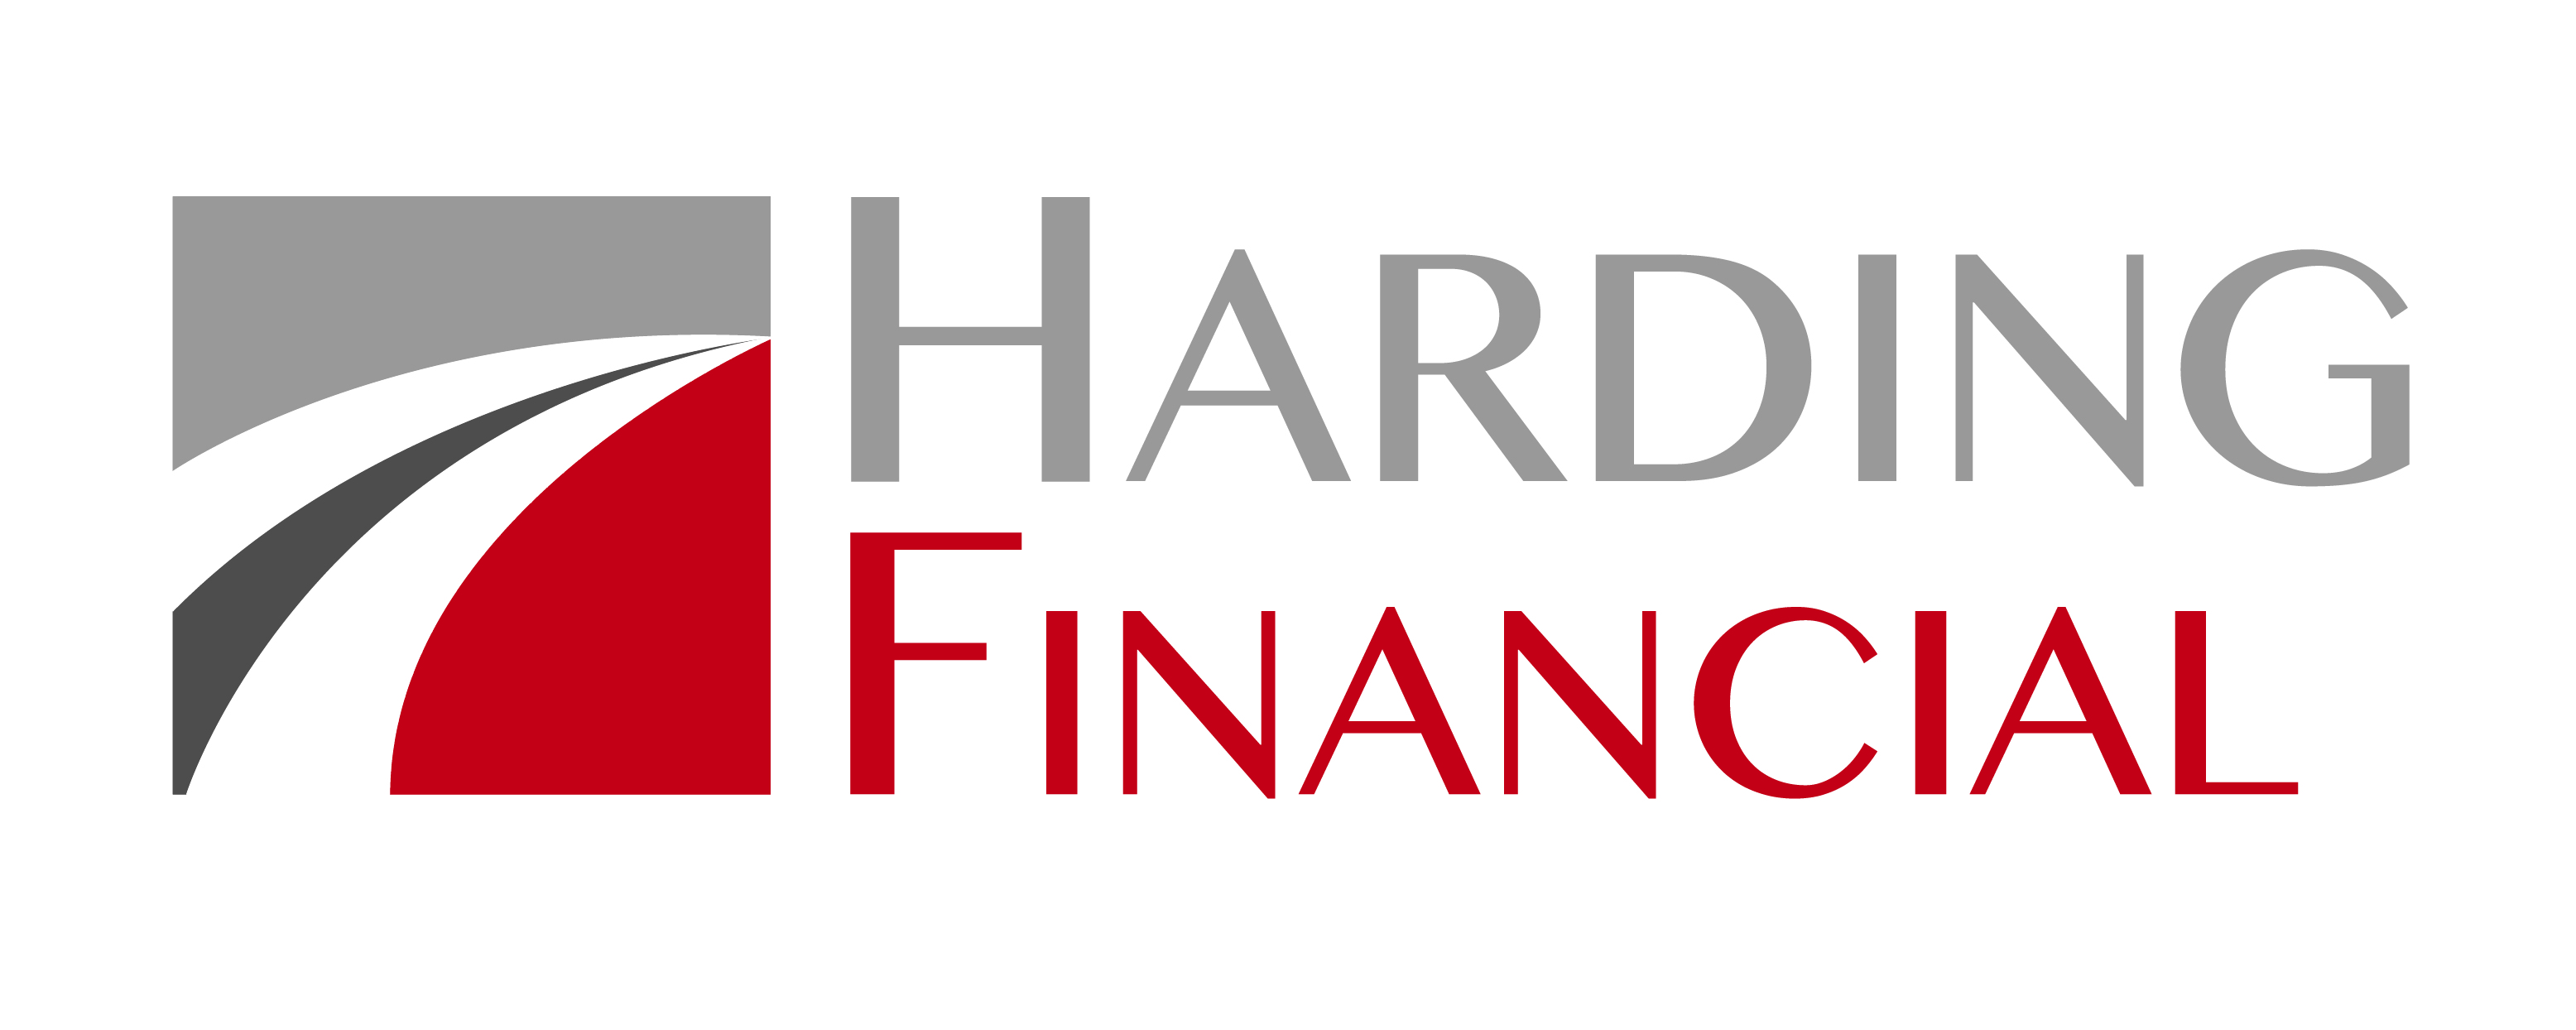 Harding Financial Ltd - company logo